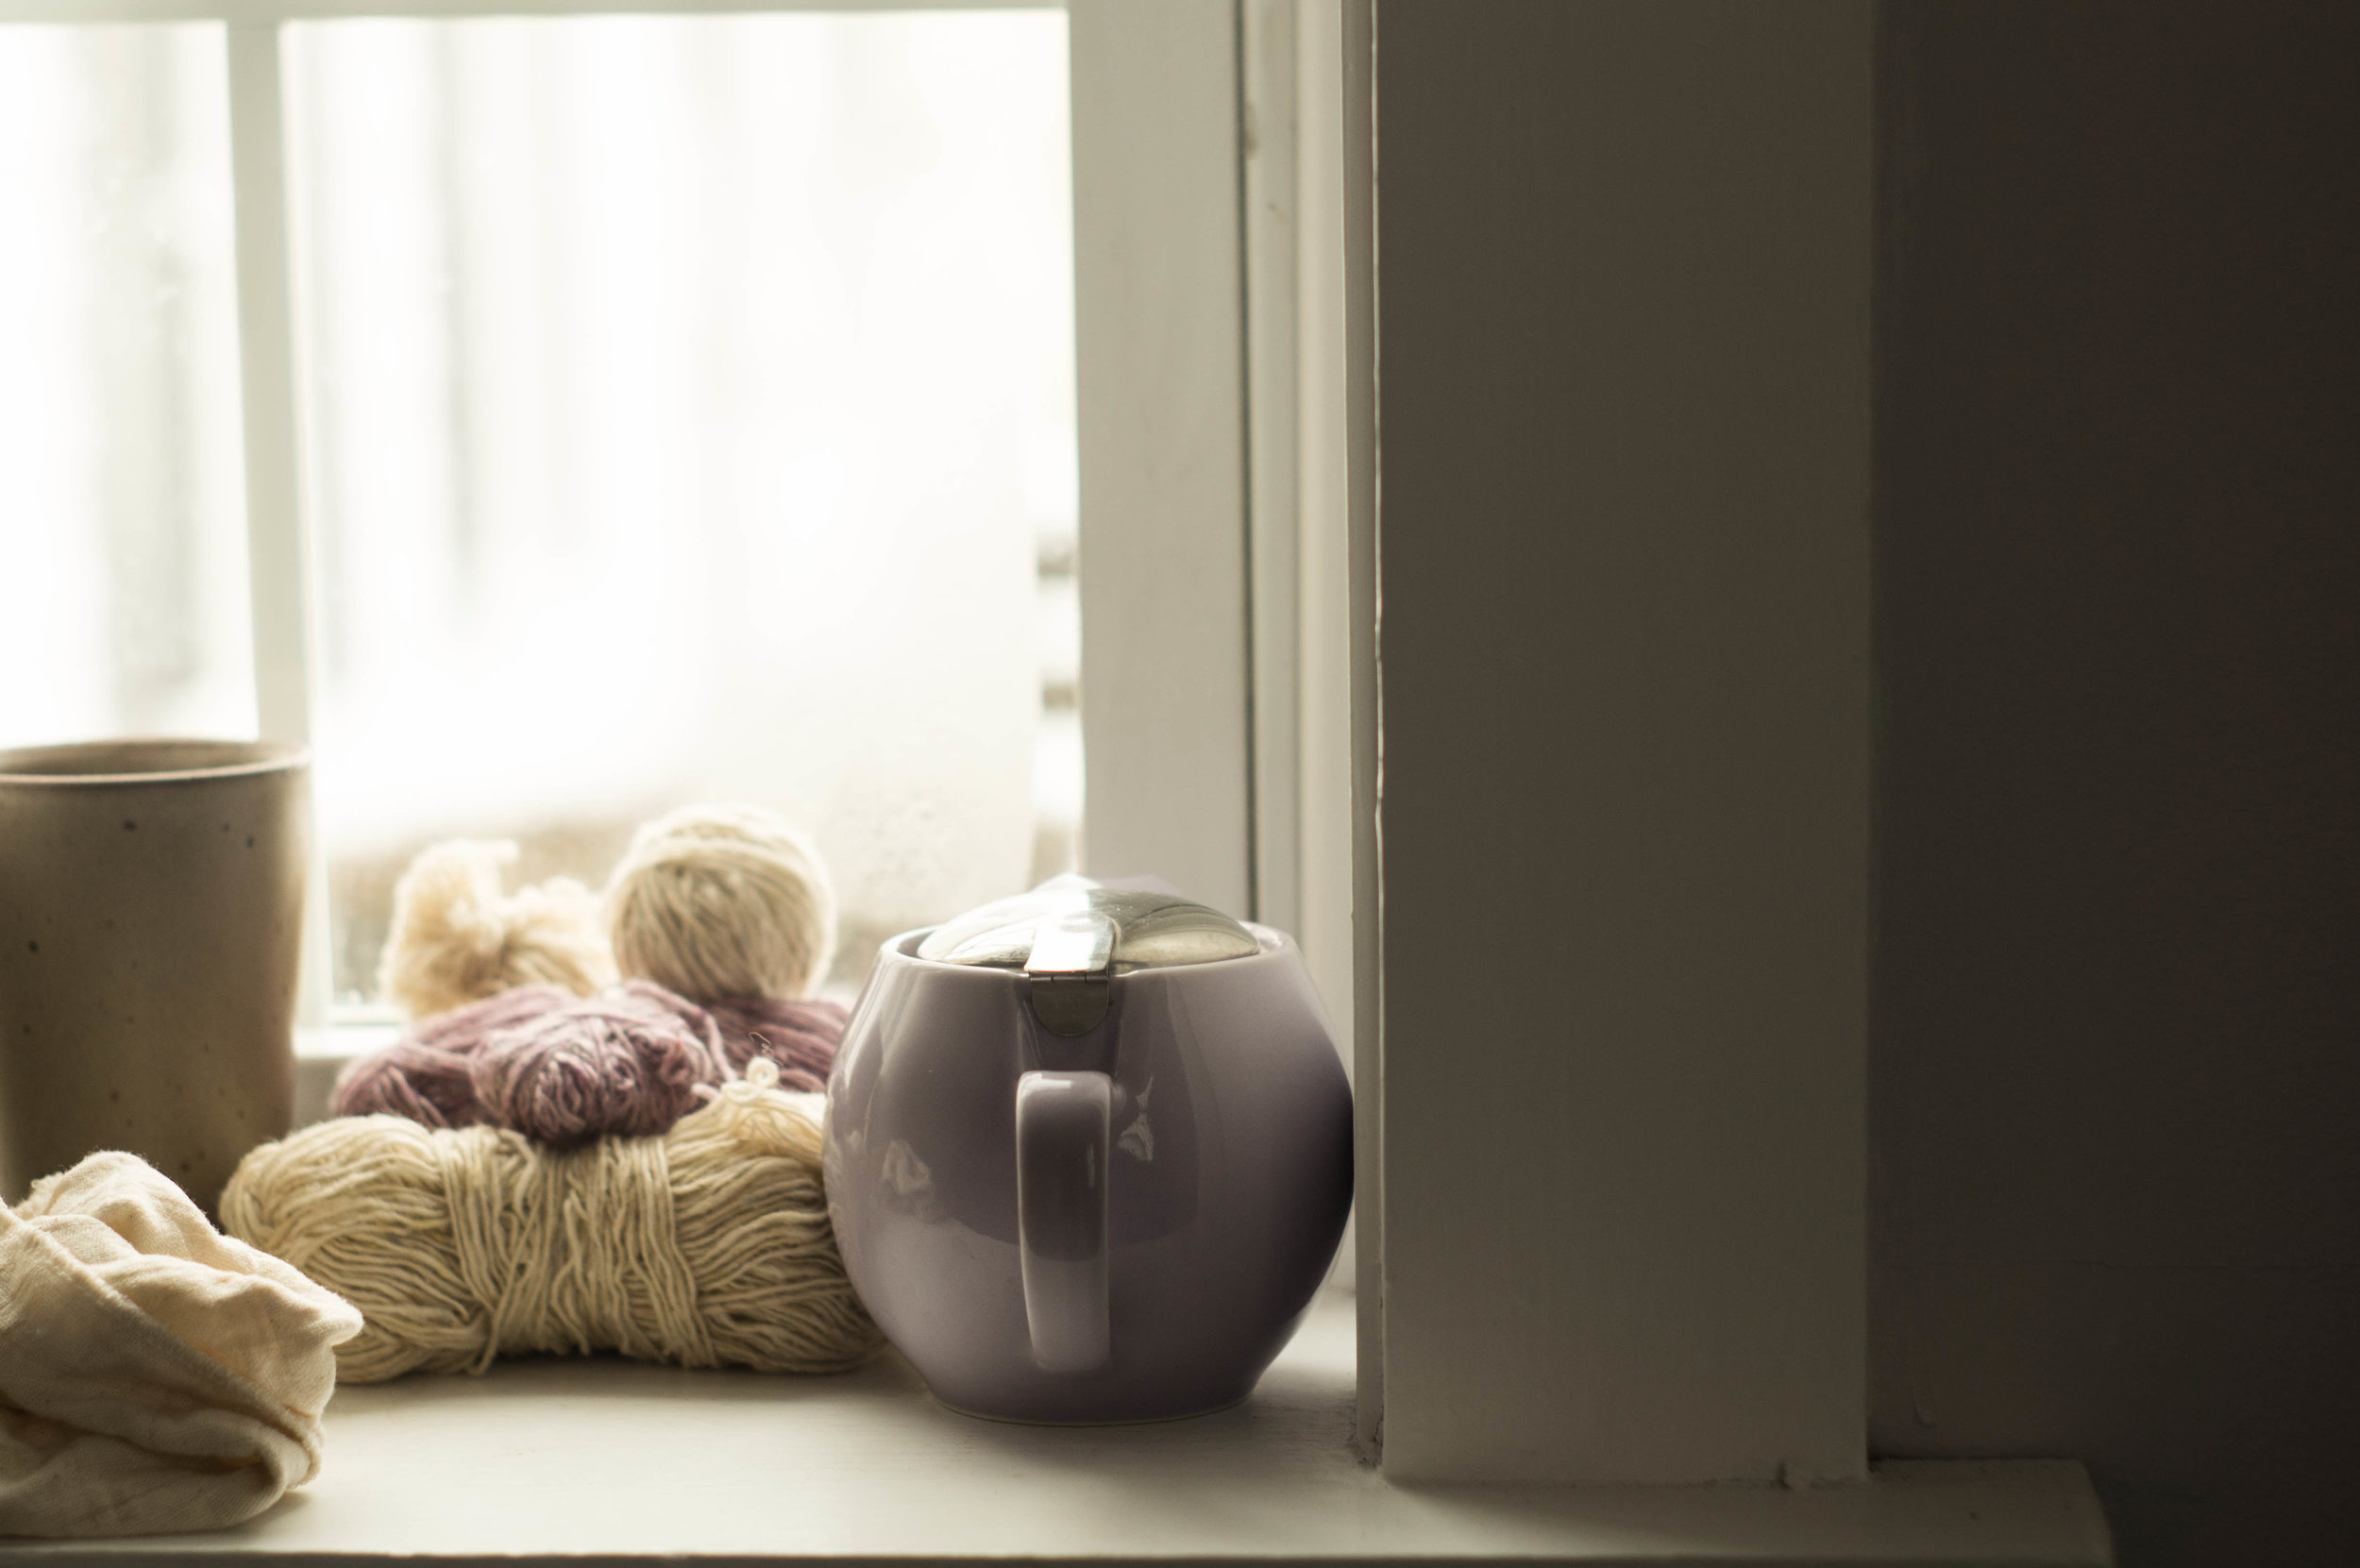 wool yarn and a tea kettle on a windowsill by samantha spigos